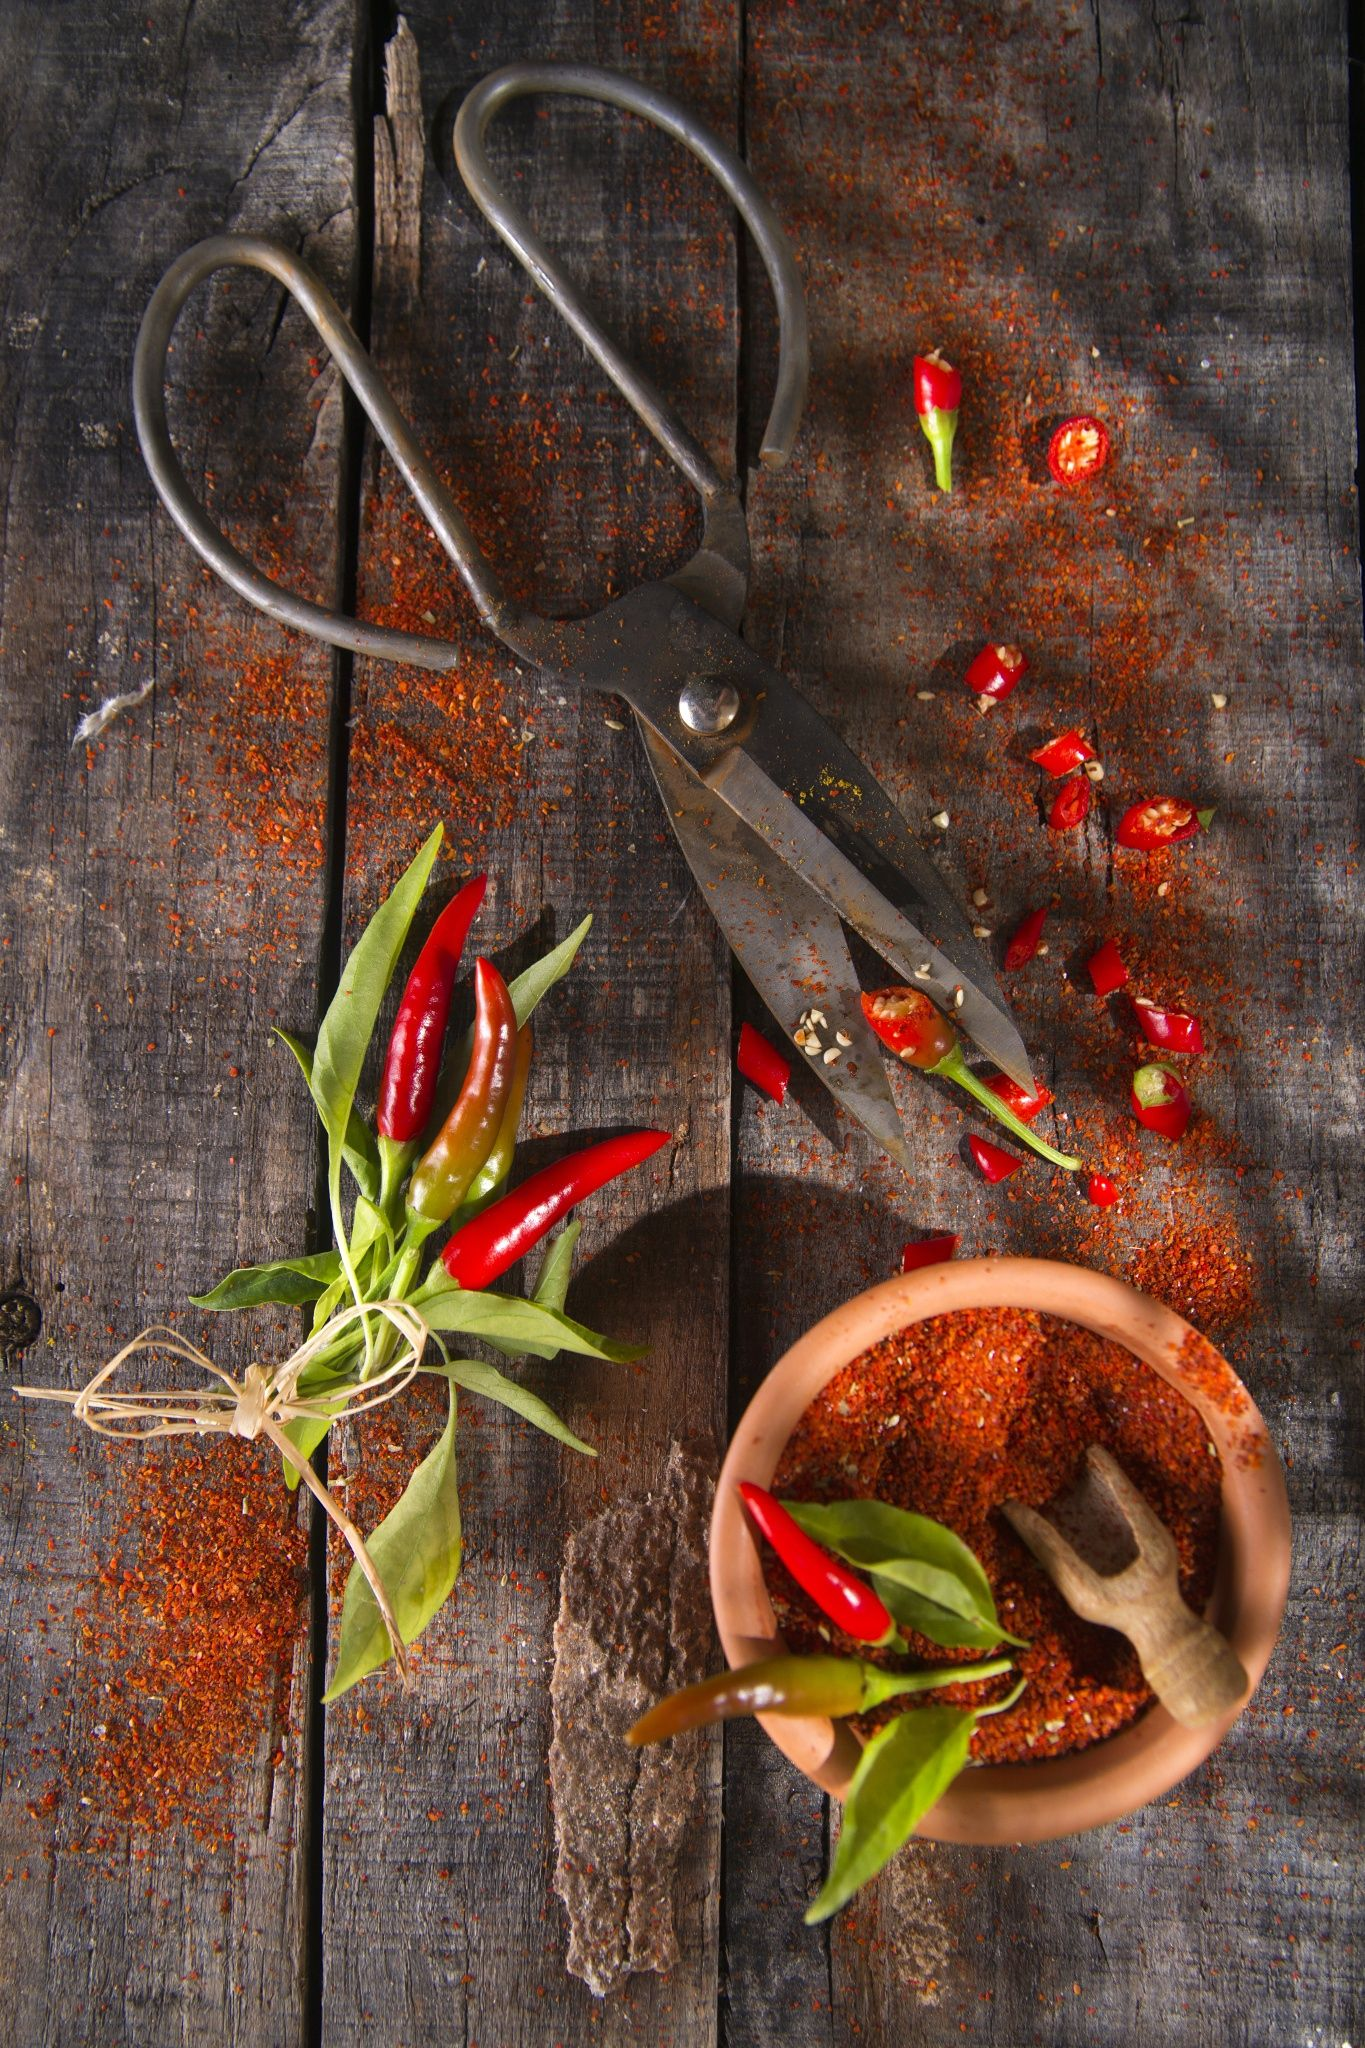 Chilis and Chili Powder by Marco Guidi on 500px | food/product ...